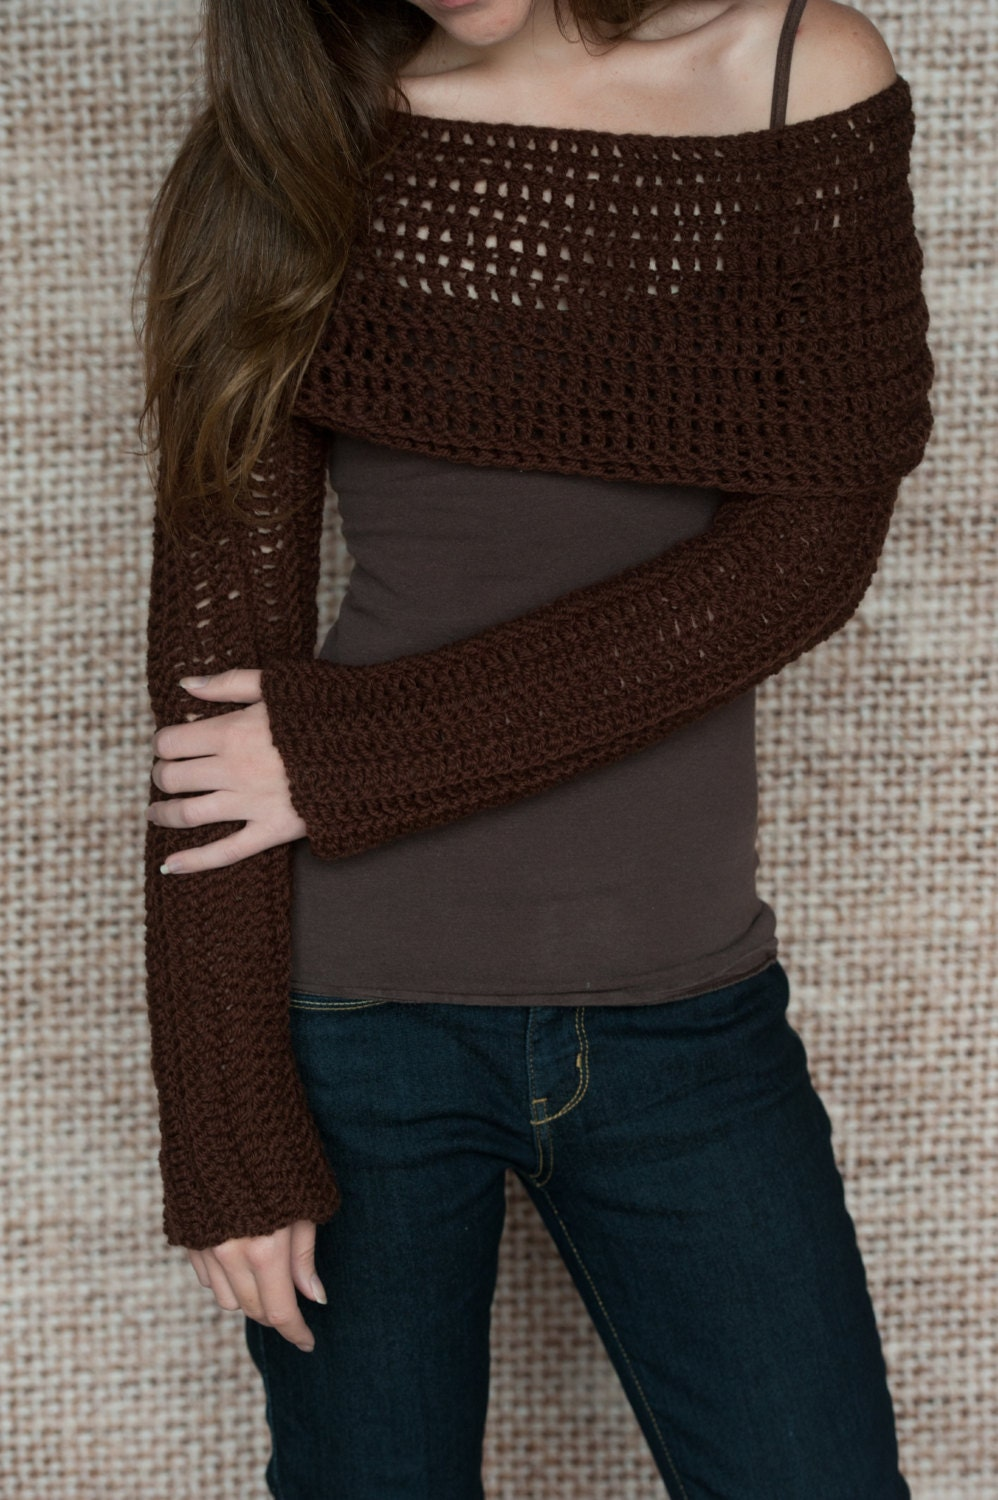 Crochet Pattern Sleeve Wrap Scarf Instand Download PDF